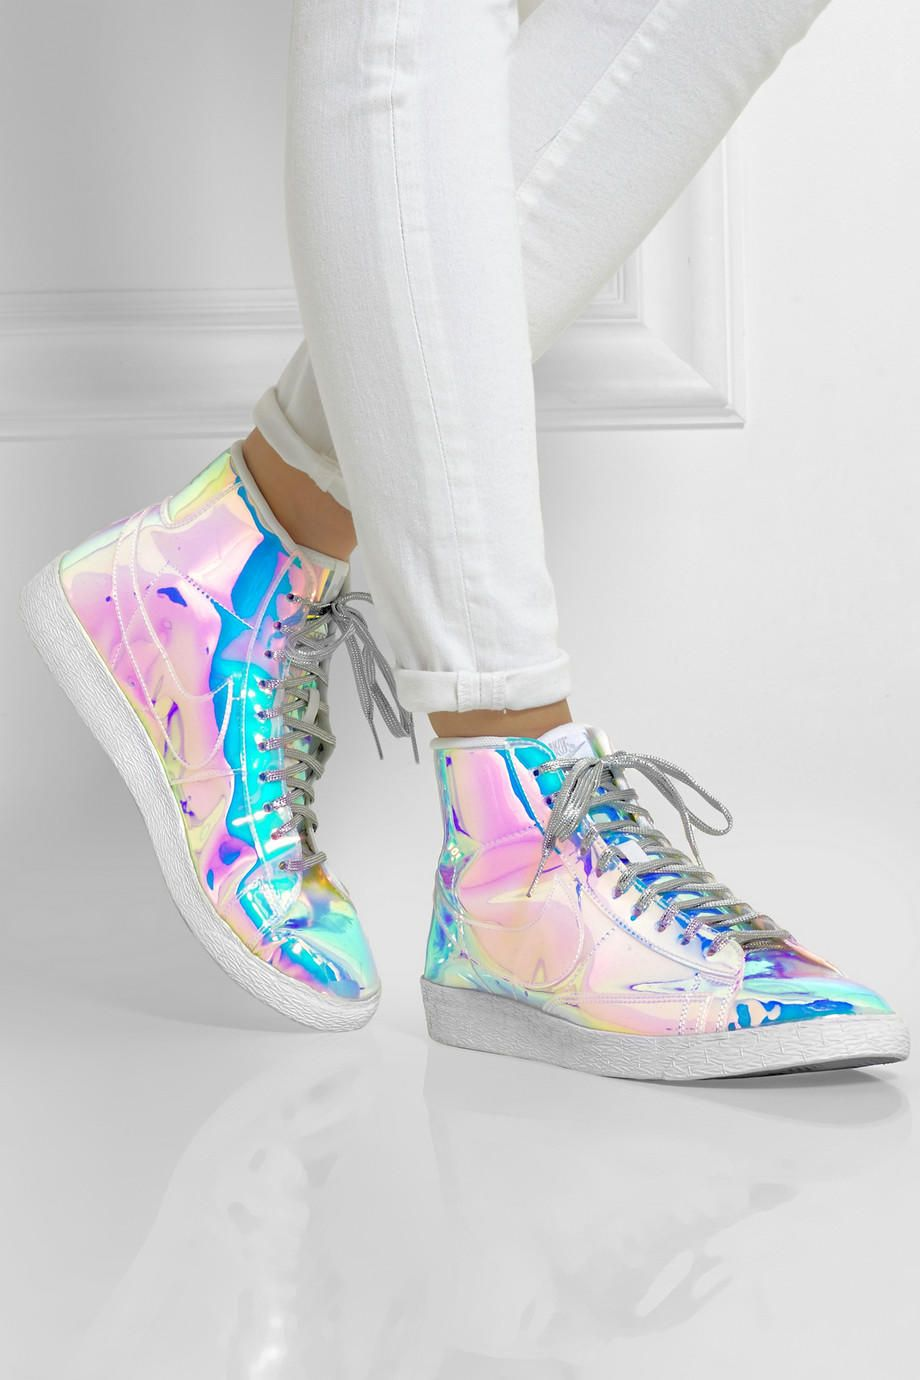 Nike Blazer Mid iridescent faux leather high top sneakers from  Sale Online